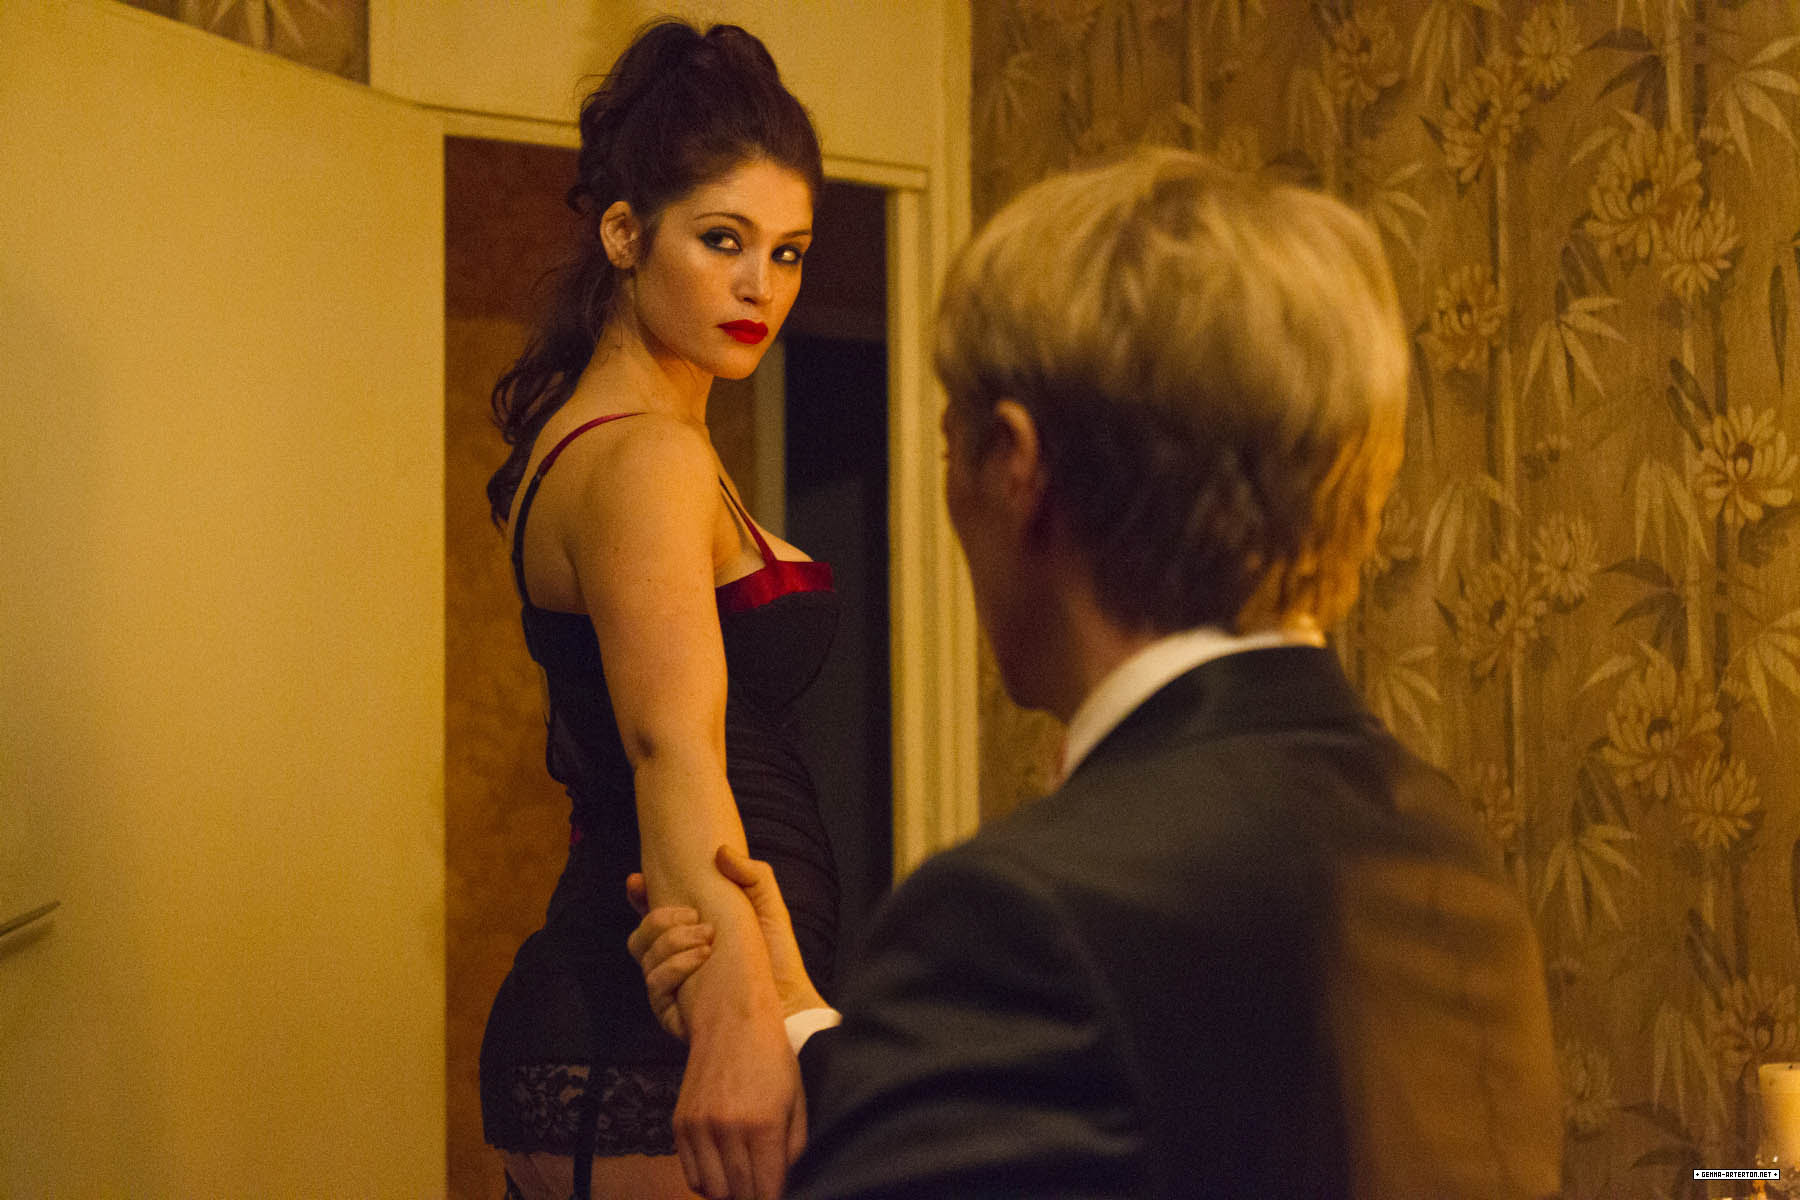 Gemma Arterton Top 5 Performances Off The Record On The Qt And Very Hush Hush